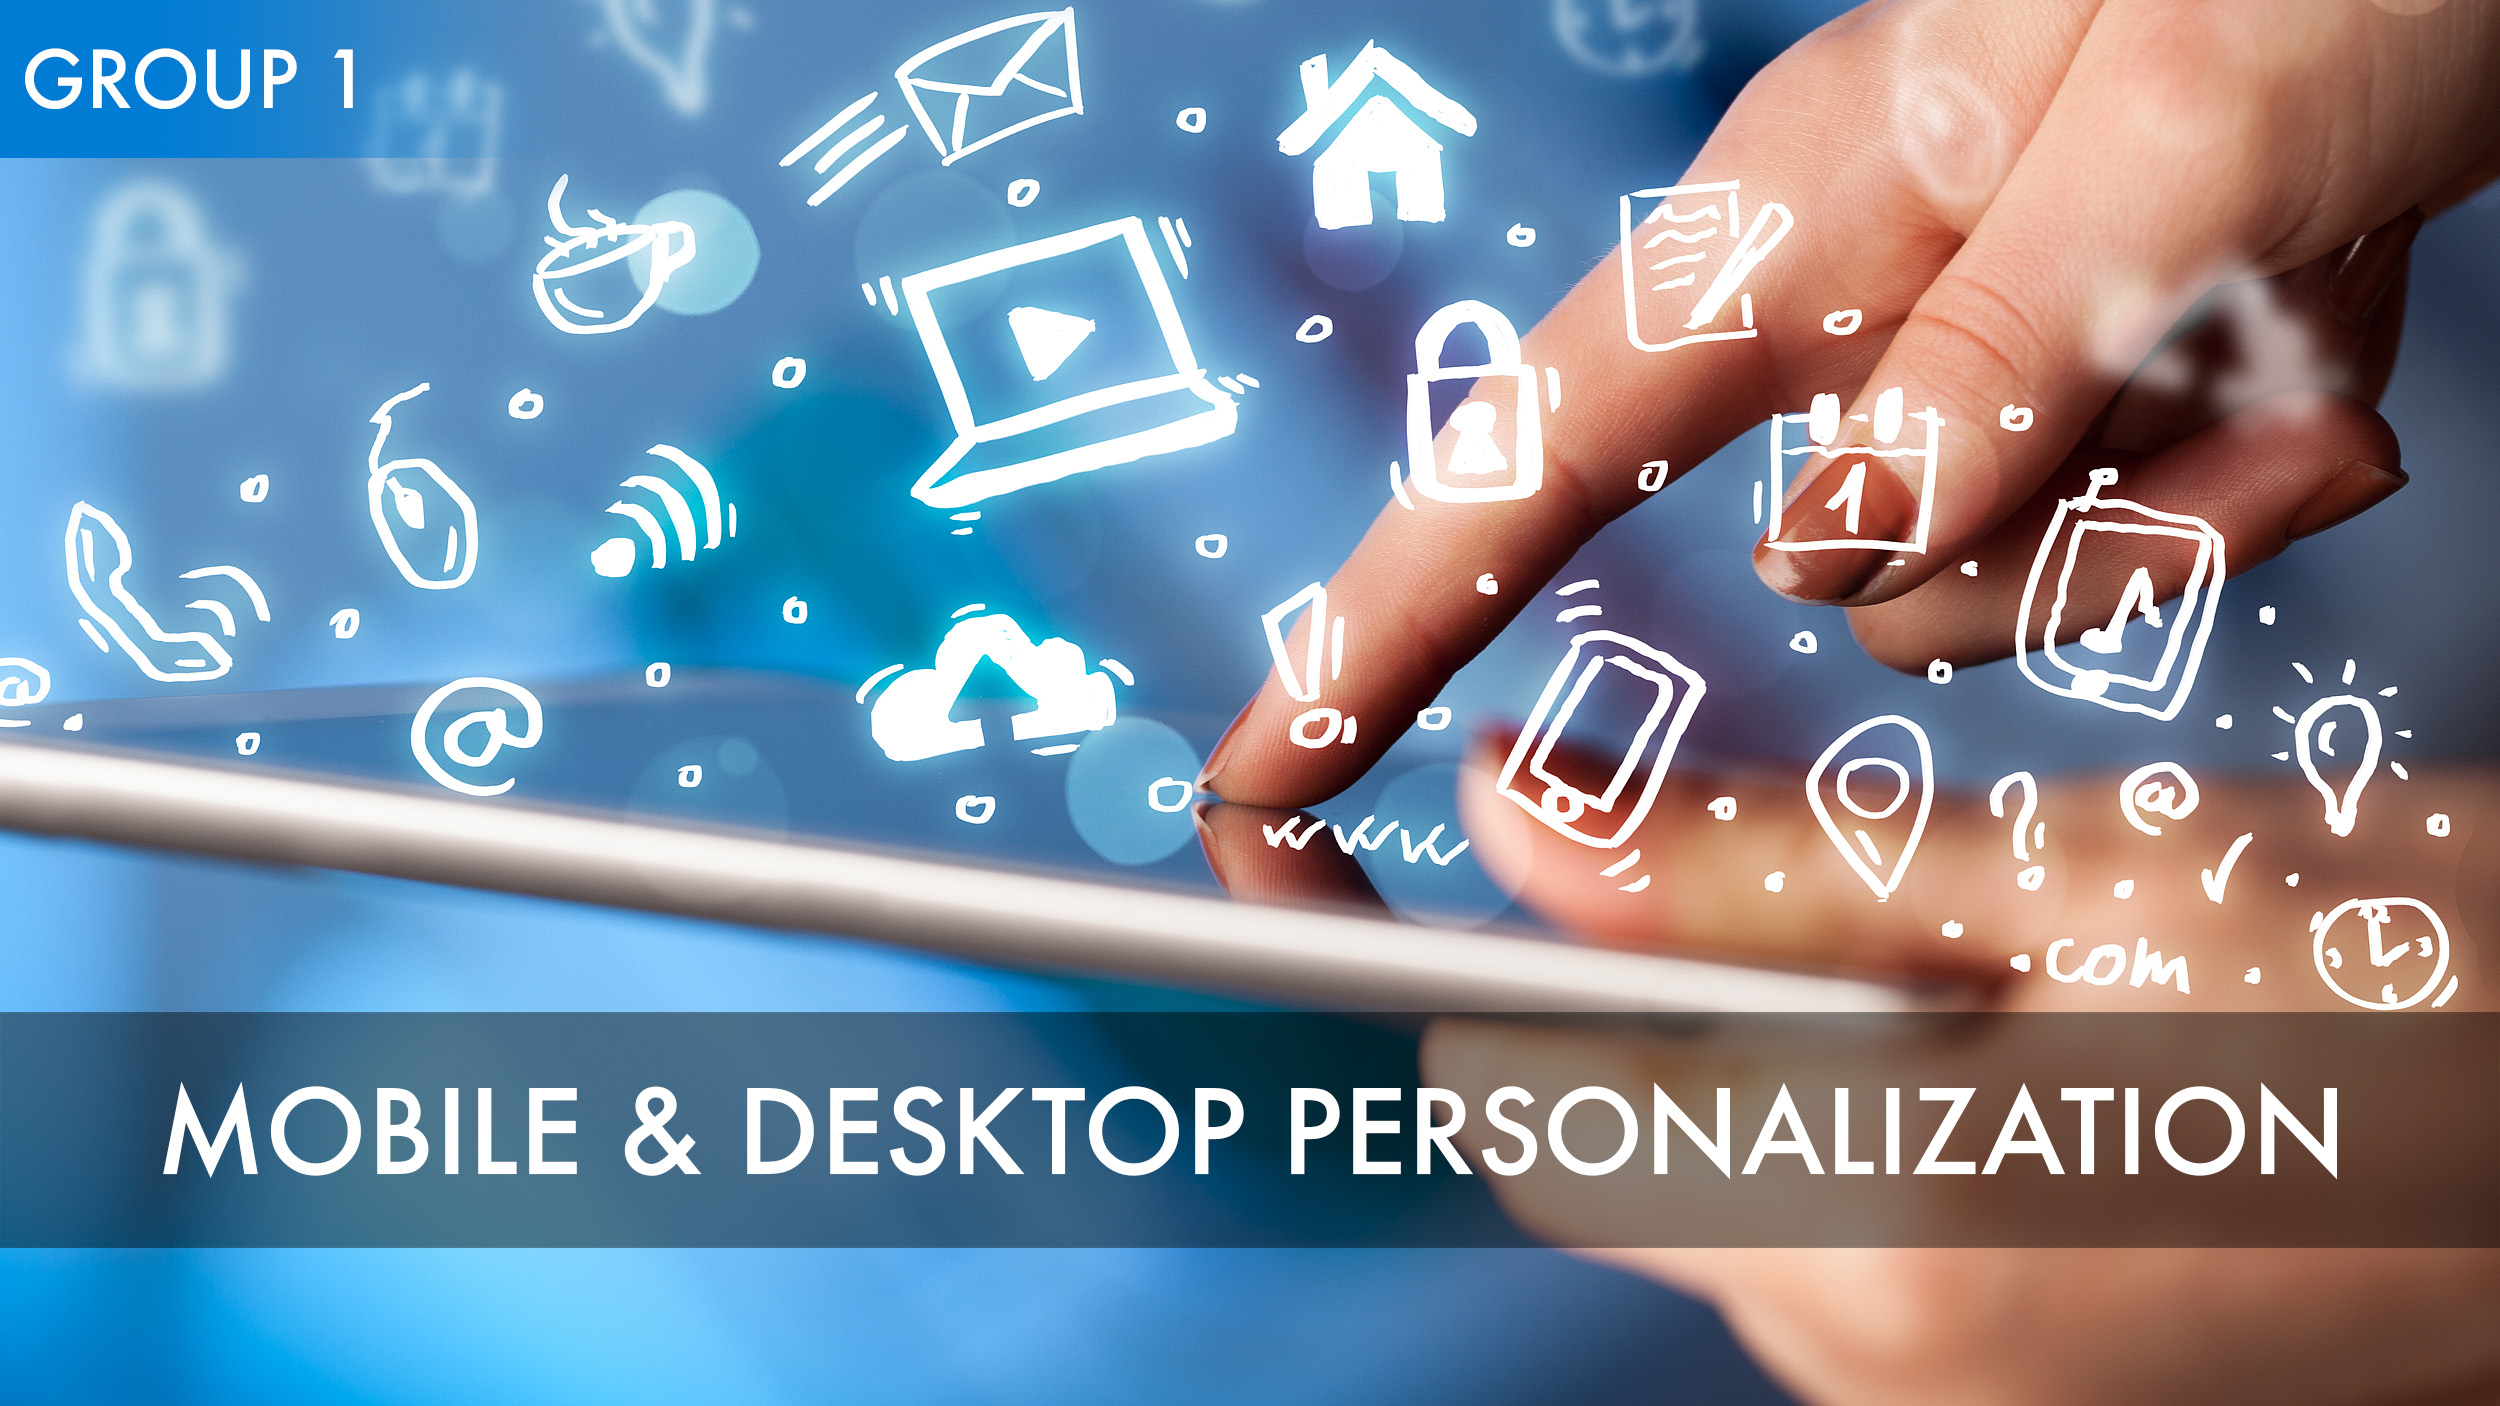 Mobile and Desktop Personalization (Group 1).jpg